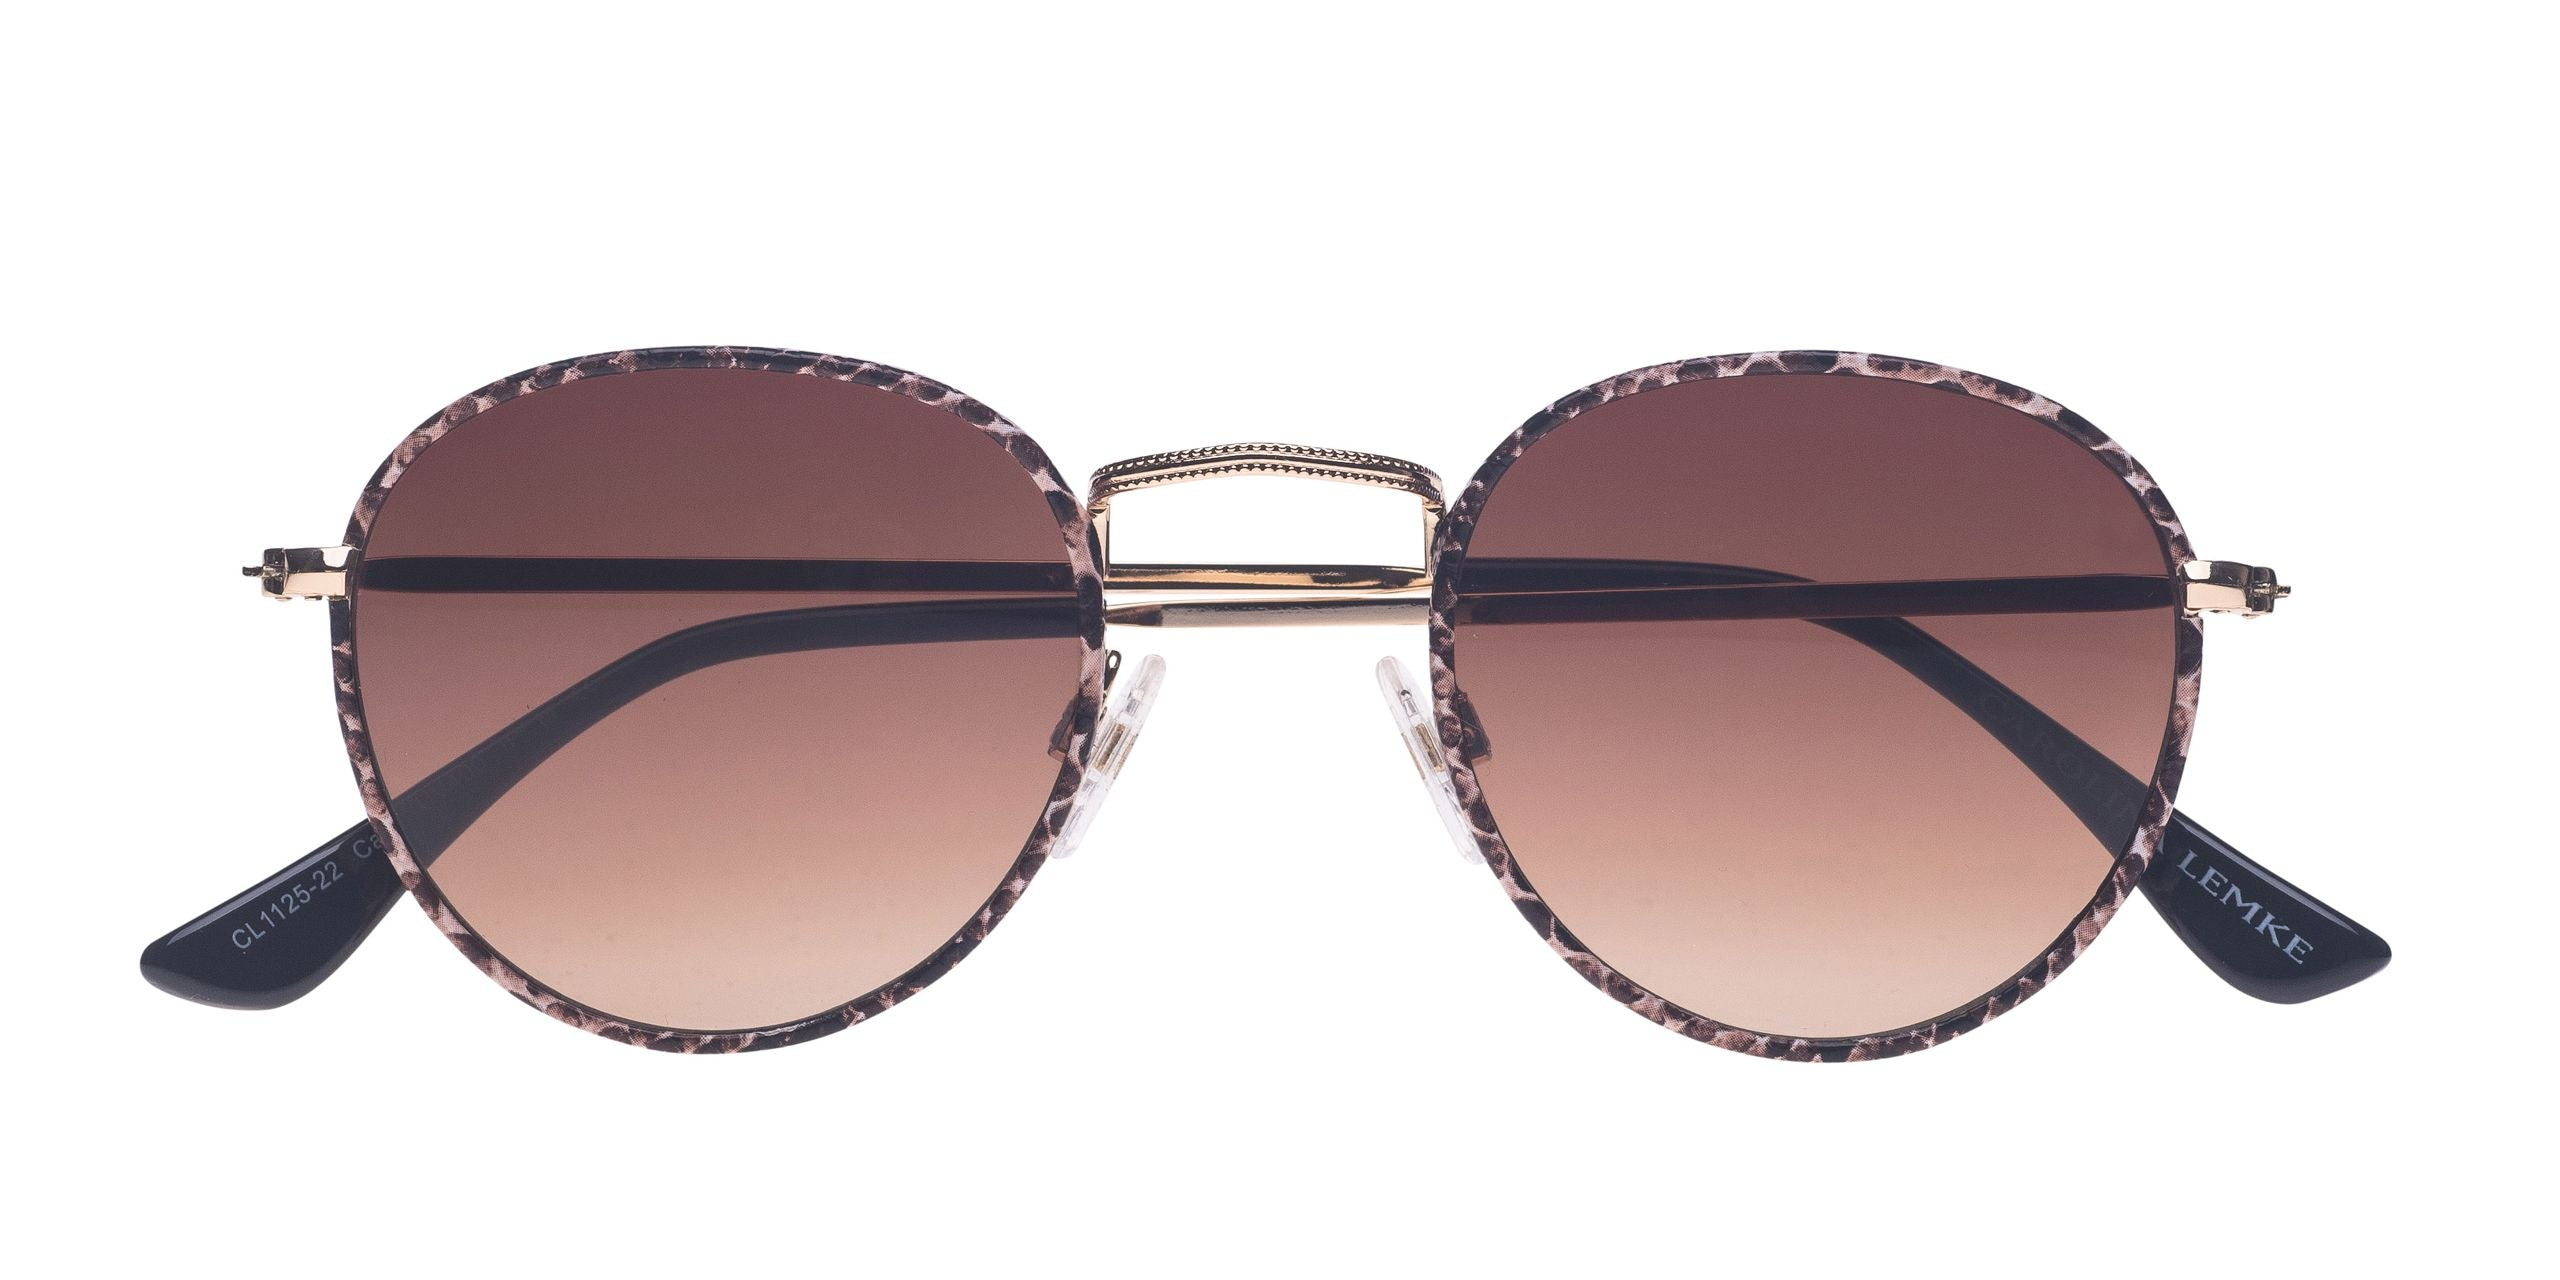 FRAME Snake LENS Gradient Brown